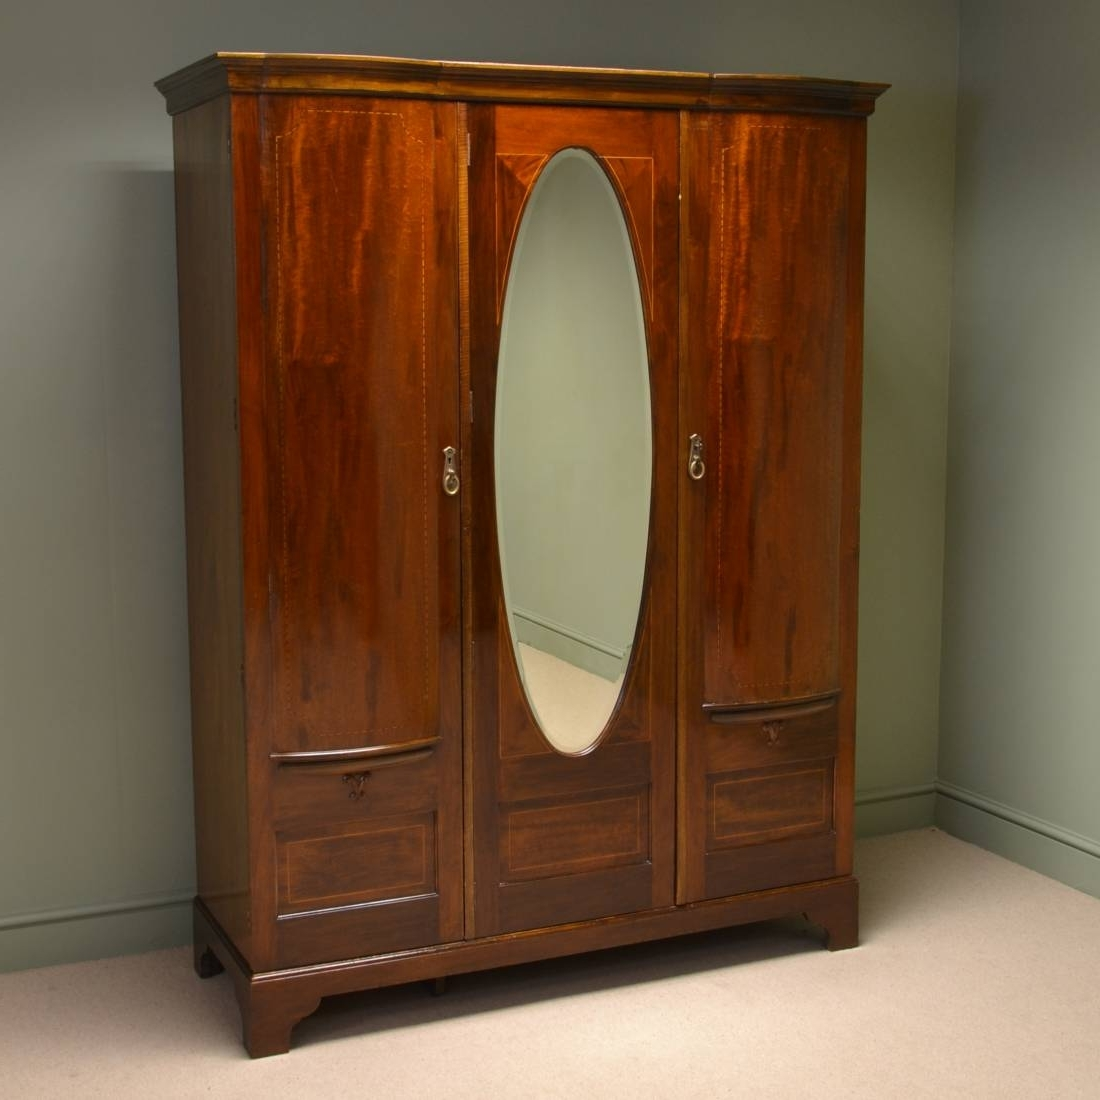 Newest Maple & Co Antique Furniture – Antiques World With Regard To Antique Single Wardrobes (View 14 of 15)